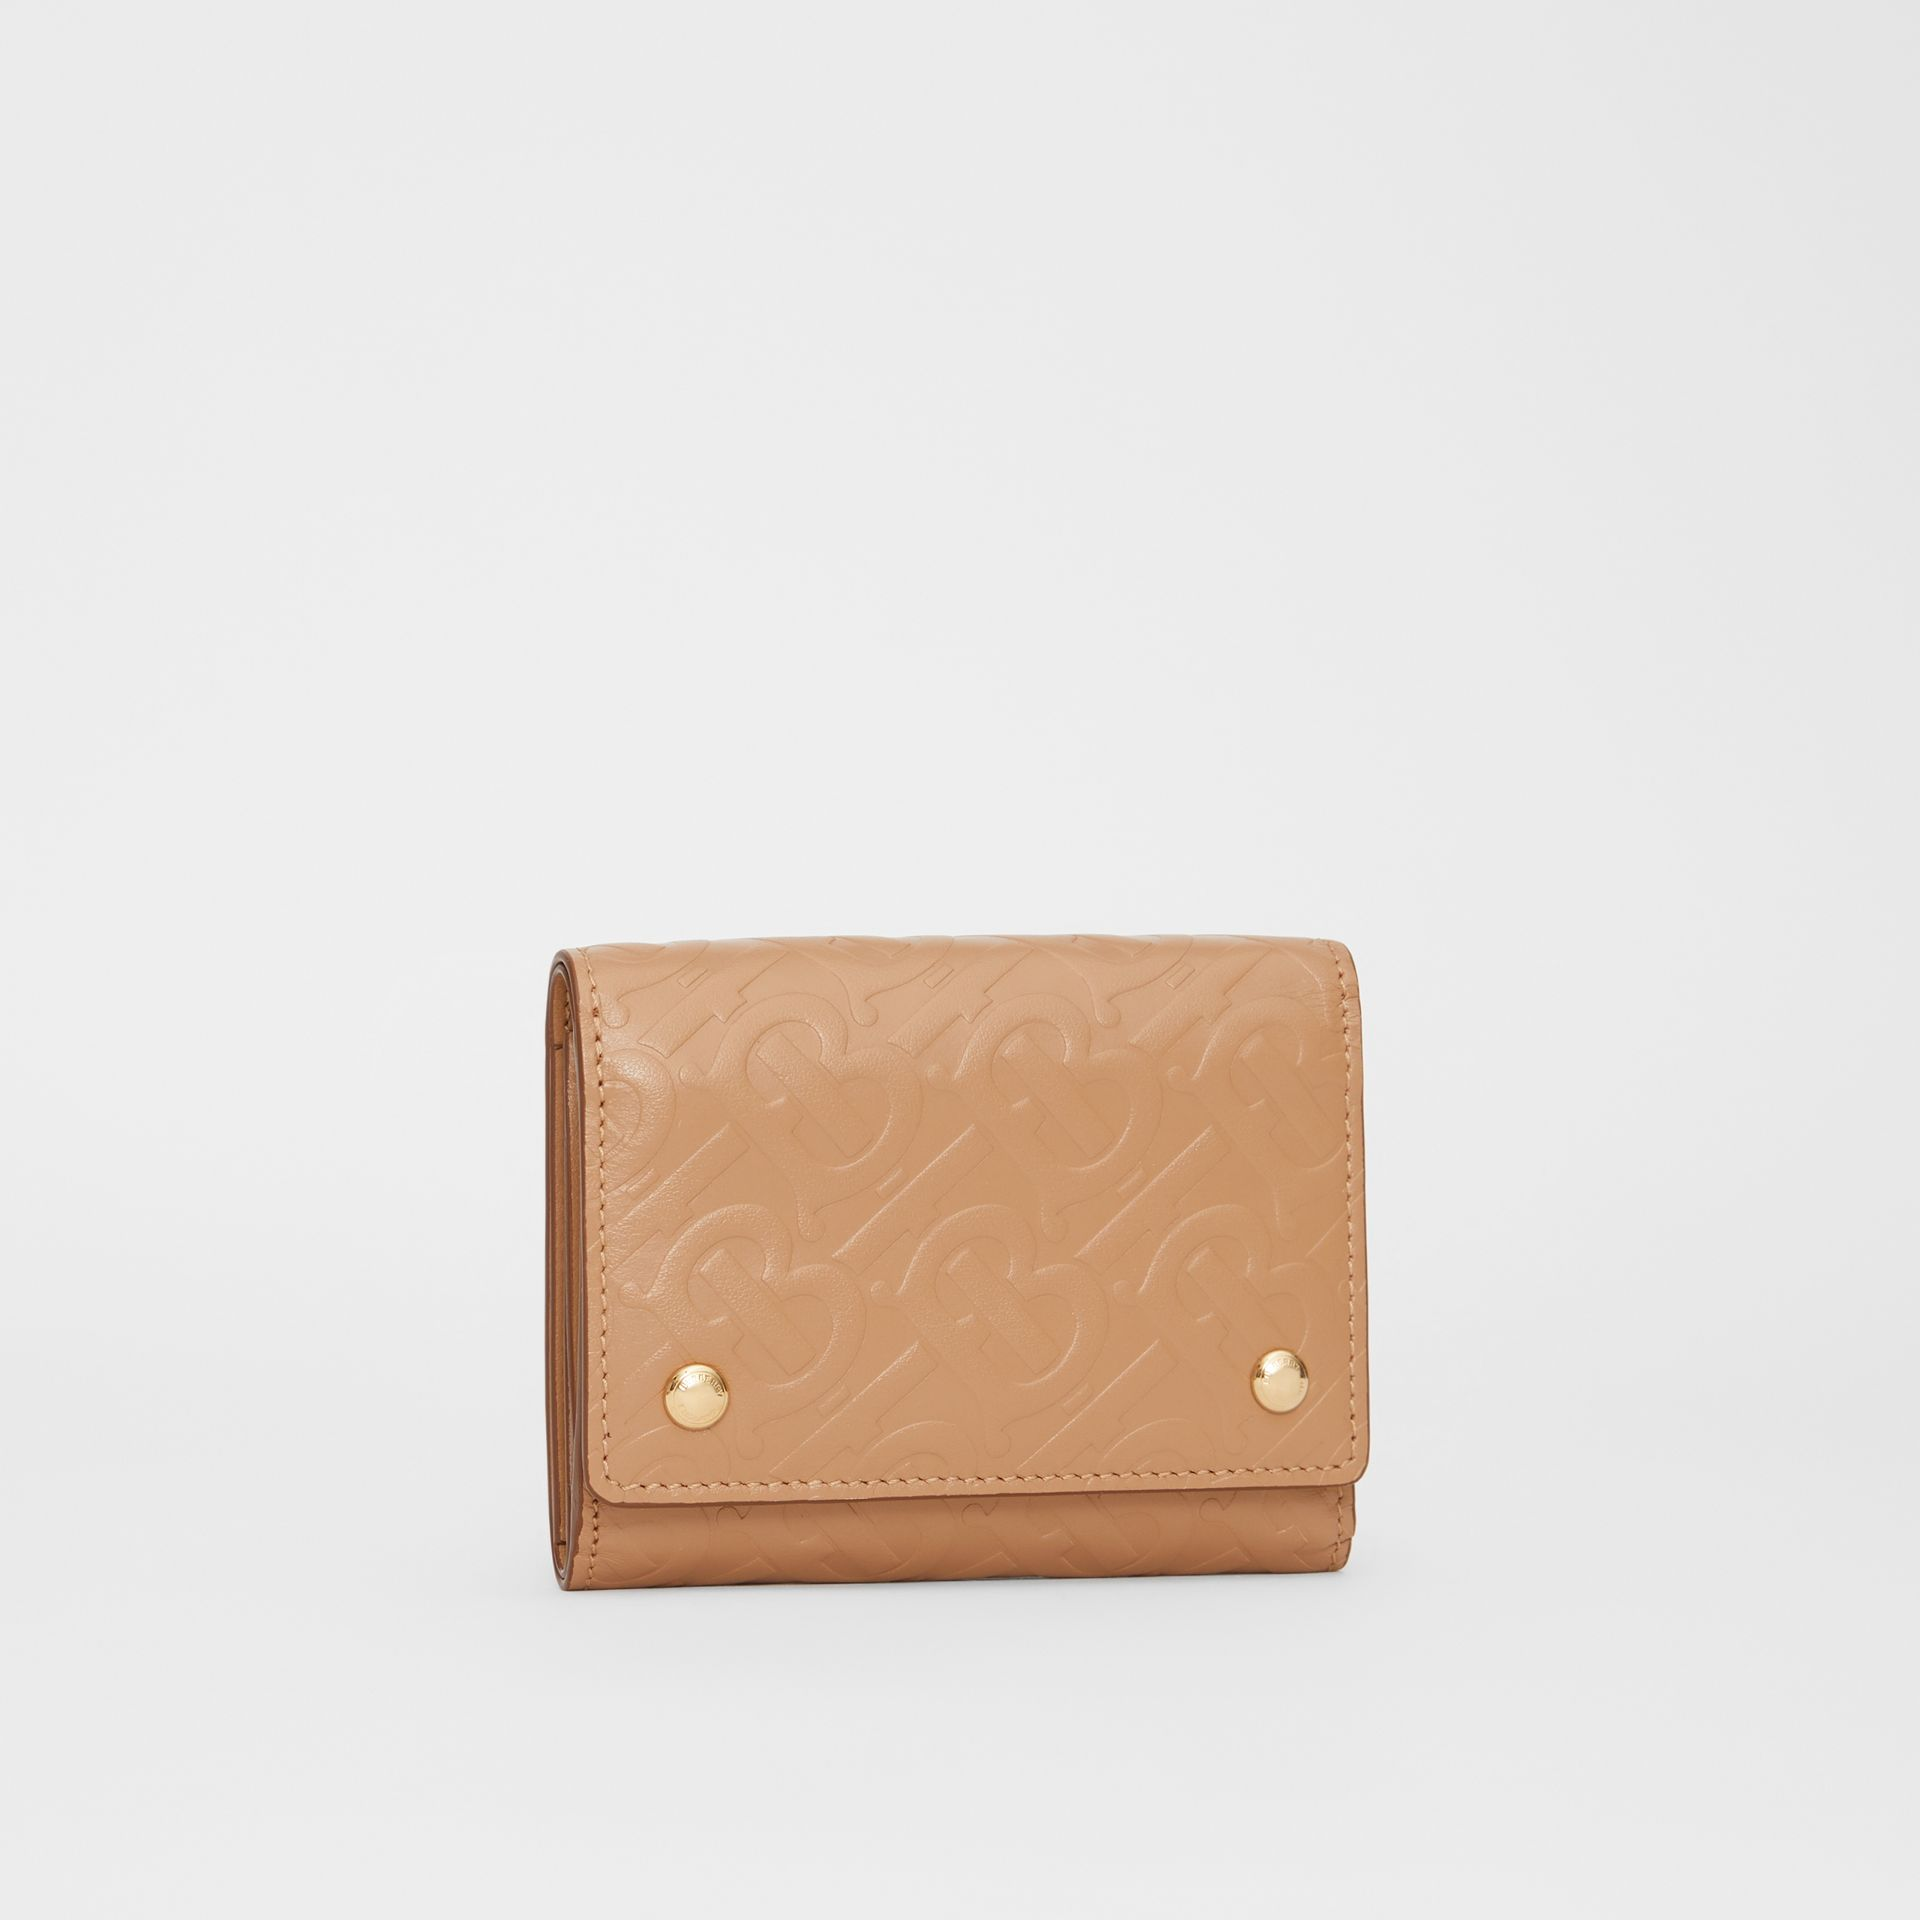 Small Monogram Leather Folding Wallet in Light Camel - Women | Burberry - gallery image 3